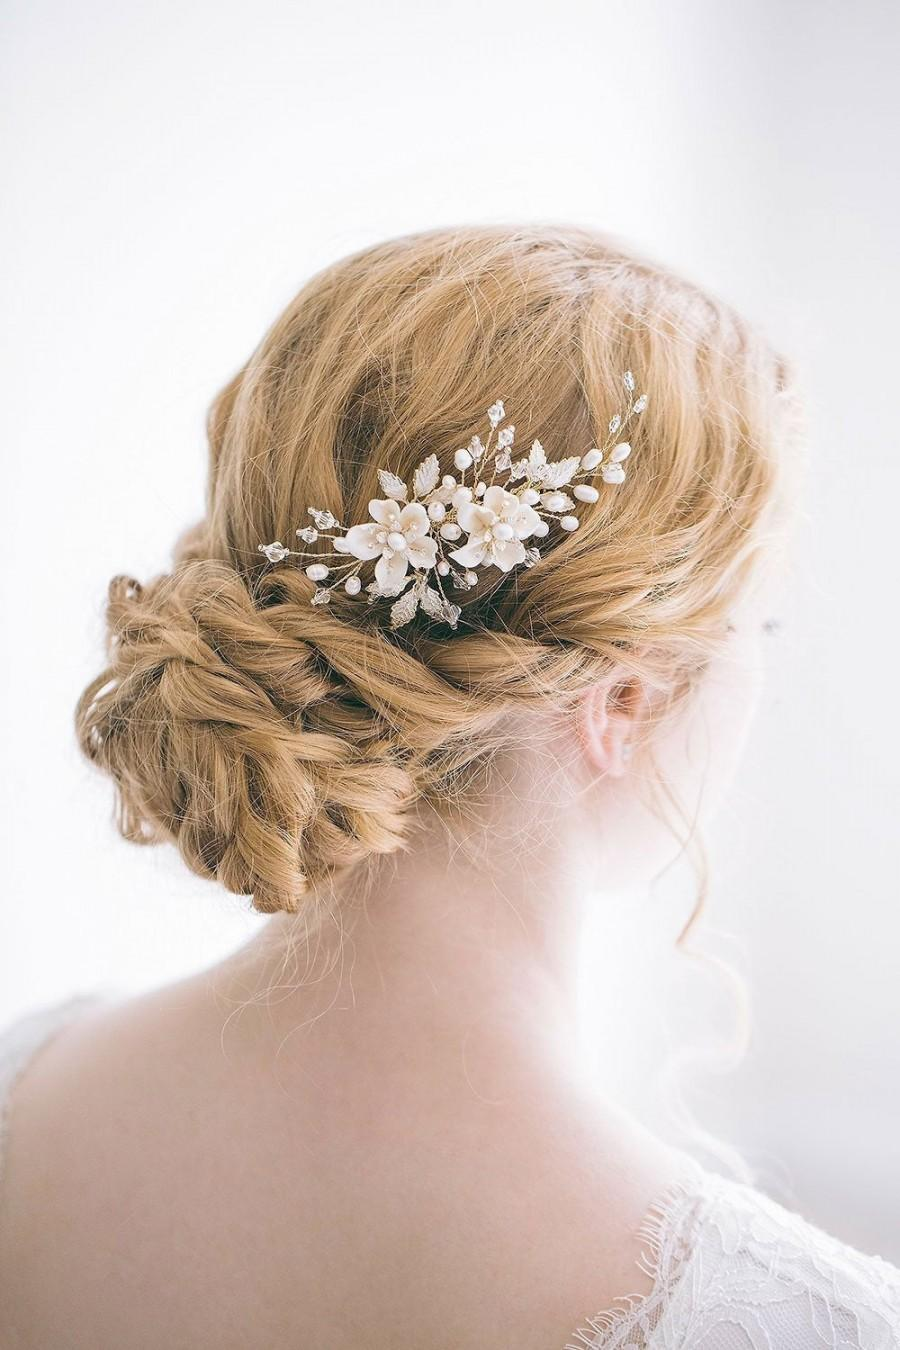 Mariage - Bridal Flower Gold Hair Comb, Bridal Hair Comb, Floral Hair Comb, Gold Hair Comb, Flower Hair Comb, Bridal Side Comb, RosyRoseStudio